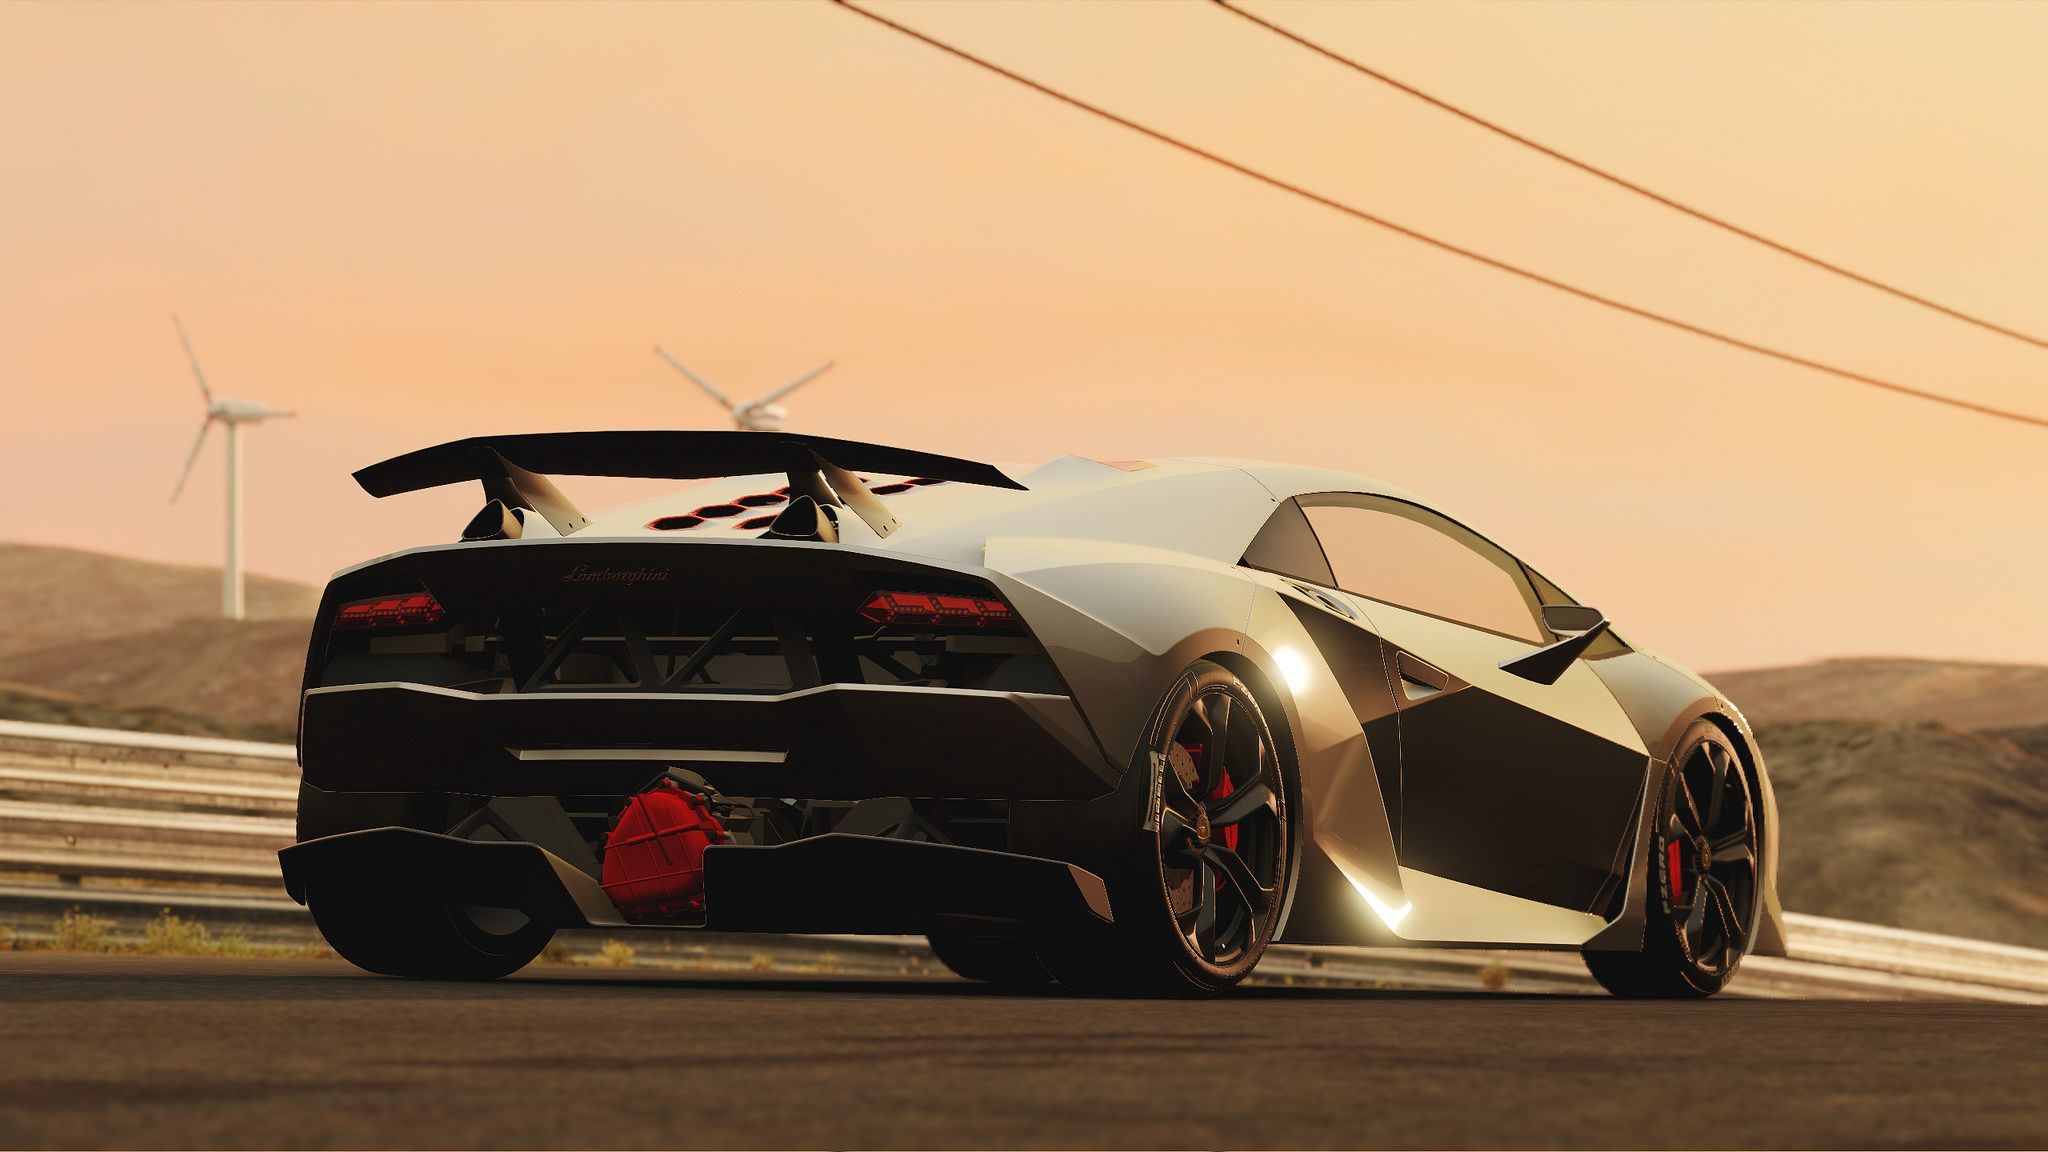 test project cars 2 pc ps4 xbox one page 1 gamalive. Black Bedroom Furniture Sets. Home Design Ideas